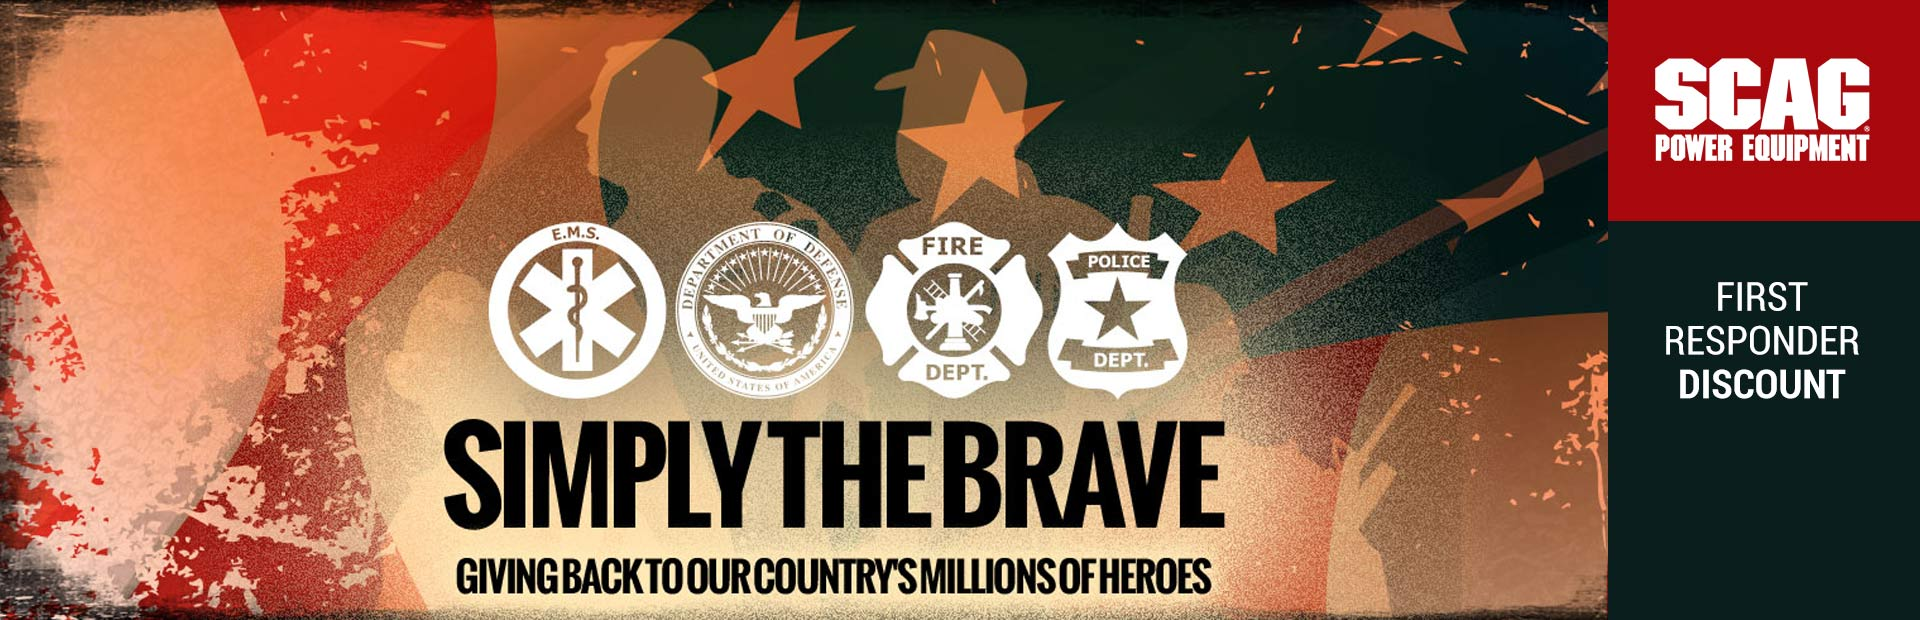 Scag: Simply the Brave - First Responder Discount